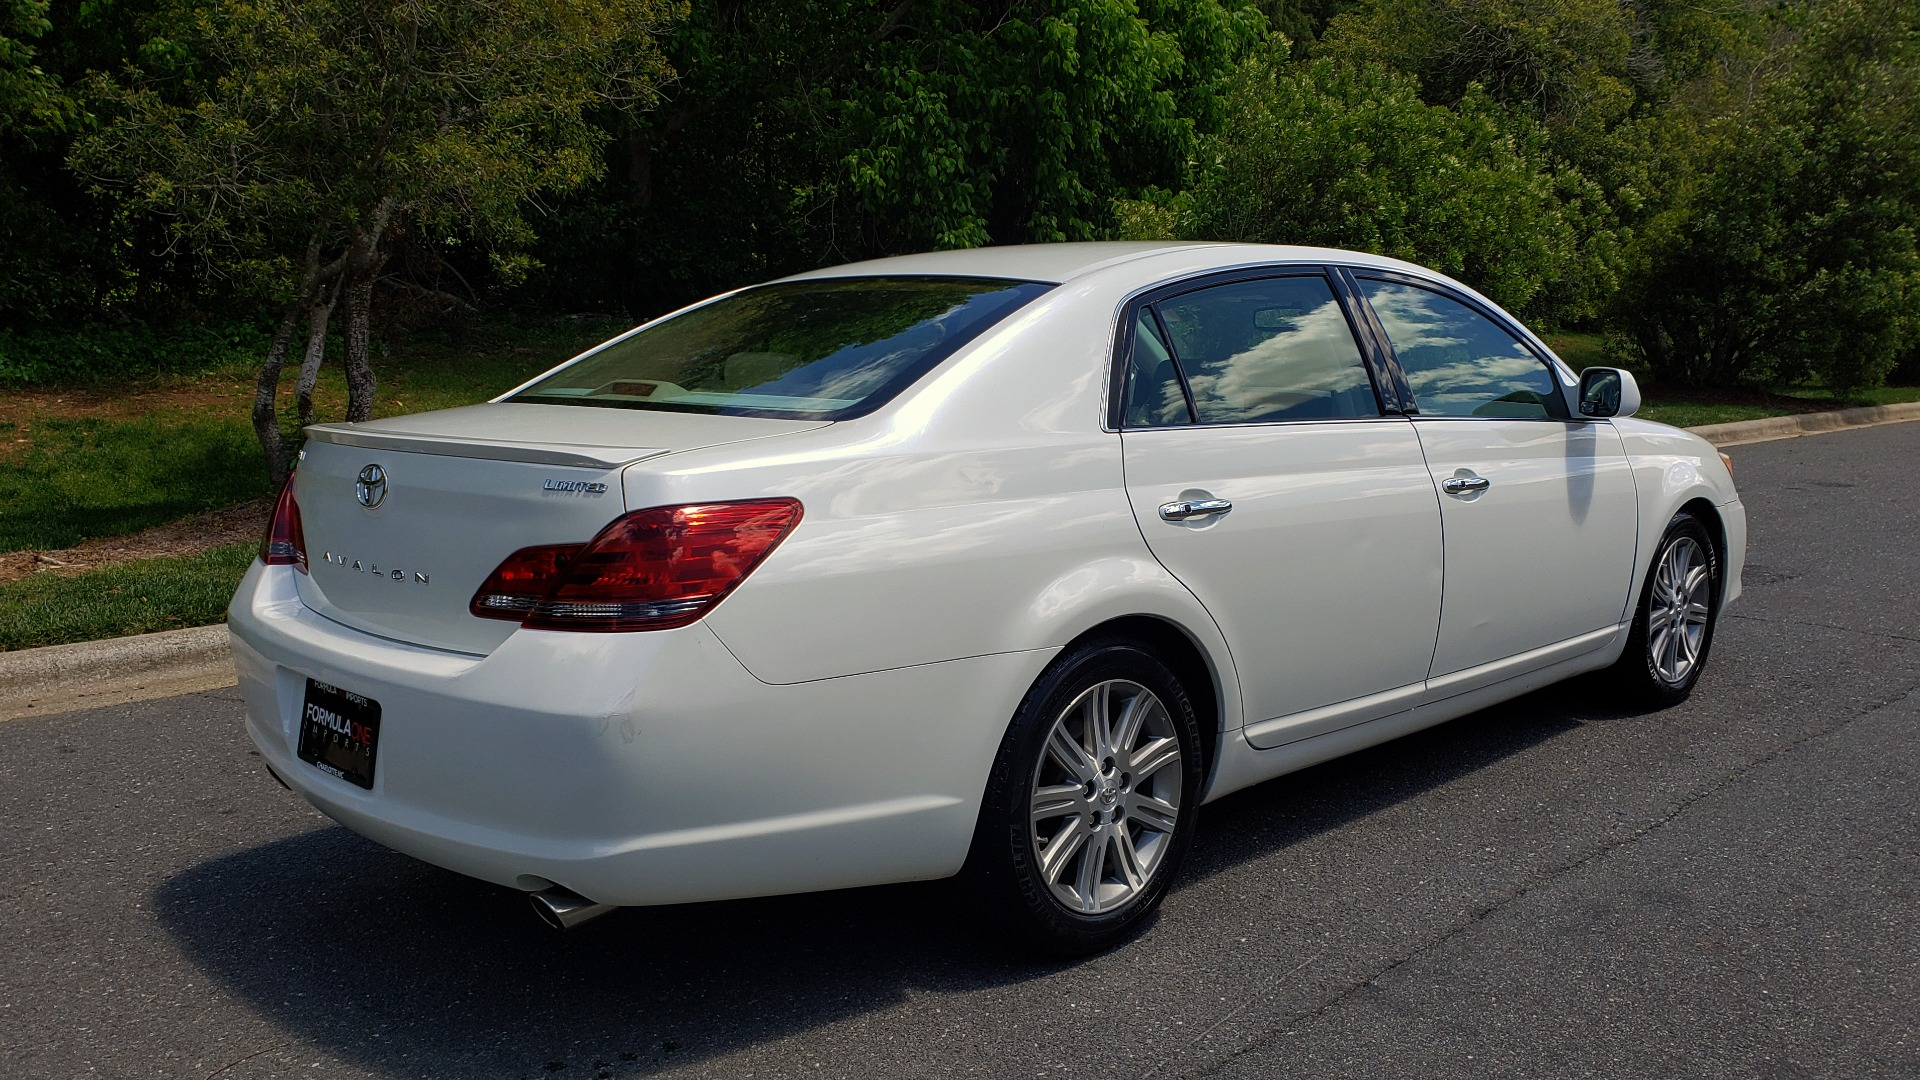 Used 2008 Toyota AVALON LIMITED V6 / FWD / SUNROOF / DYN RADAR CRUISE / BRAKE ASST for sale Sold at Formula Imports in Charlotte NC 28227 6